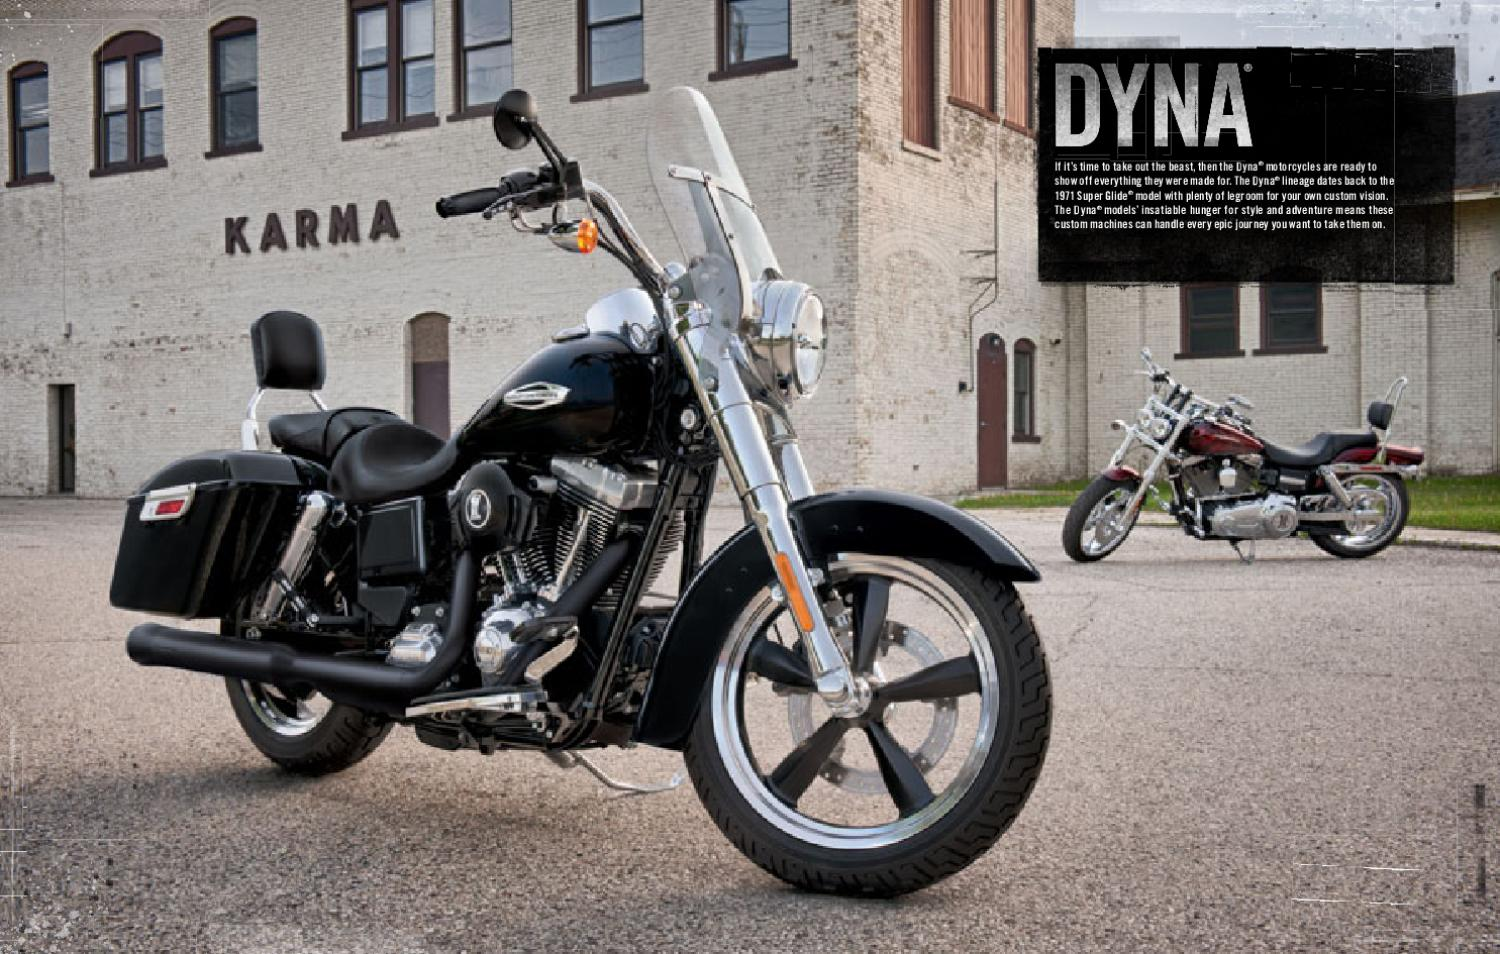 CHROME PLATED FRONT AXLE KIT HARLEY DYNA FXD35 FXDL FXD